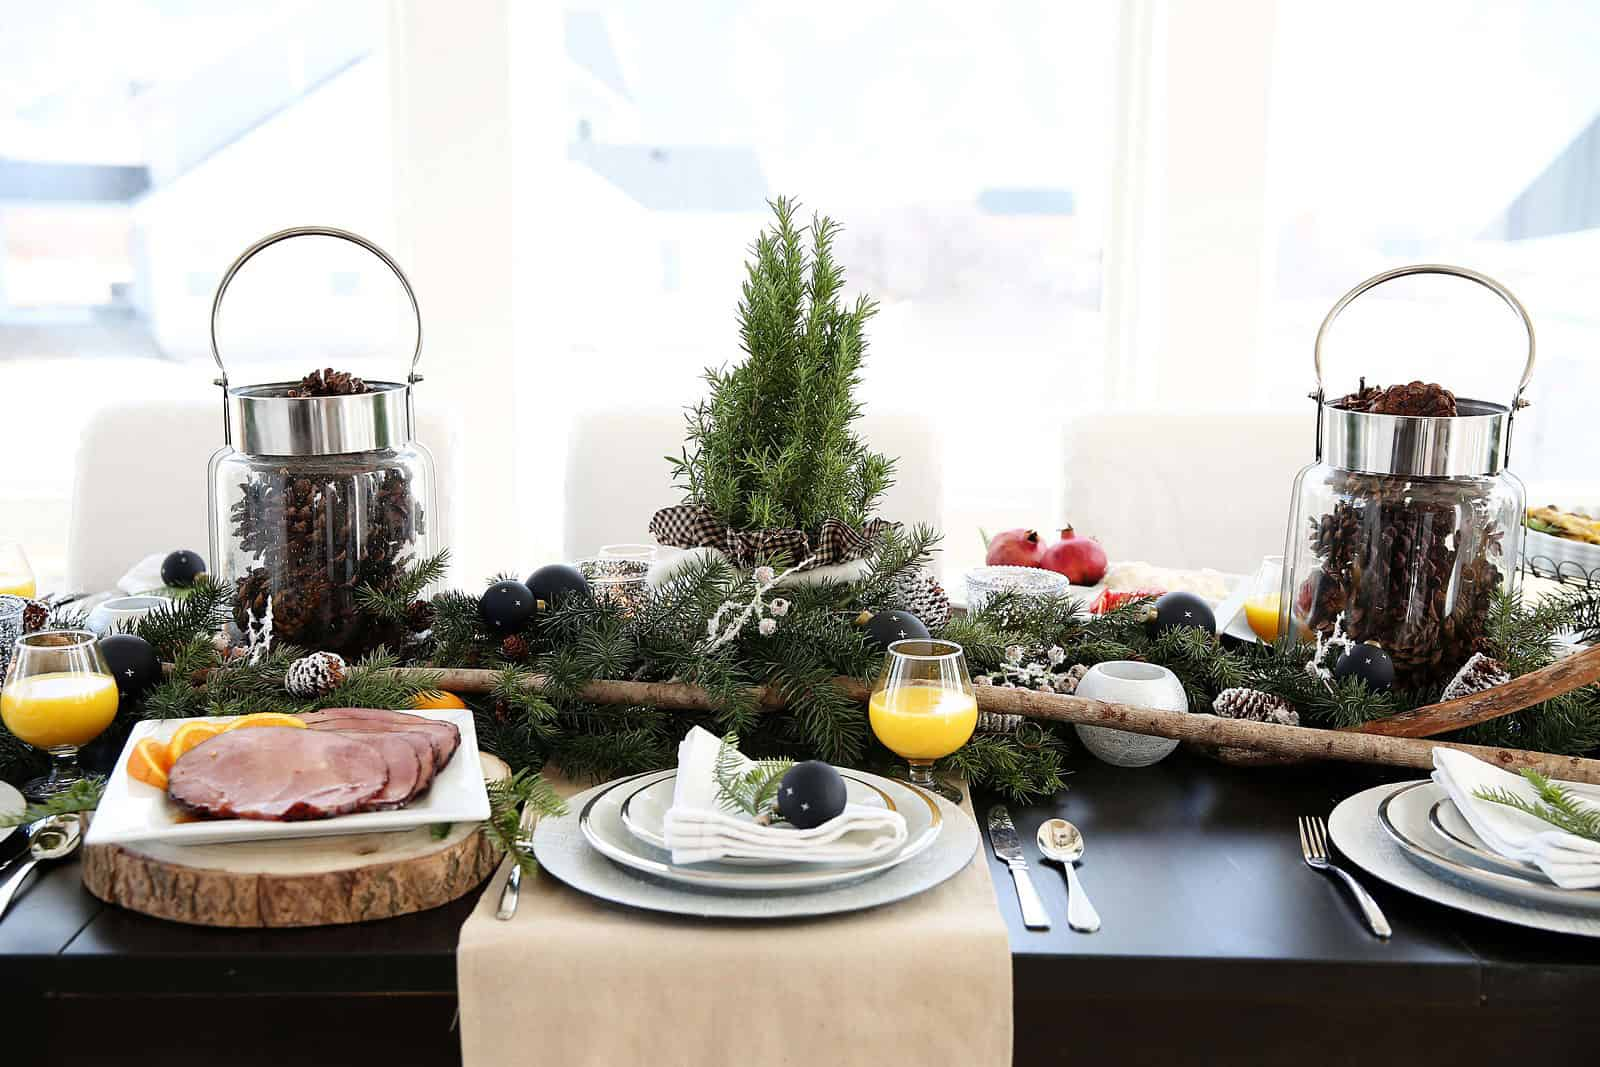 Christmas Brunch Menu Ideas - Over the Big Moon